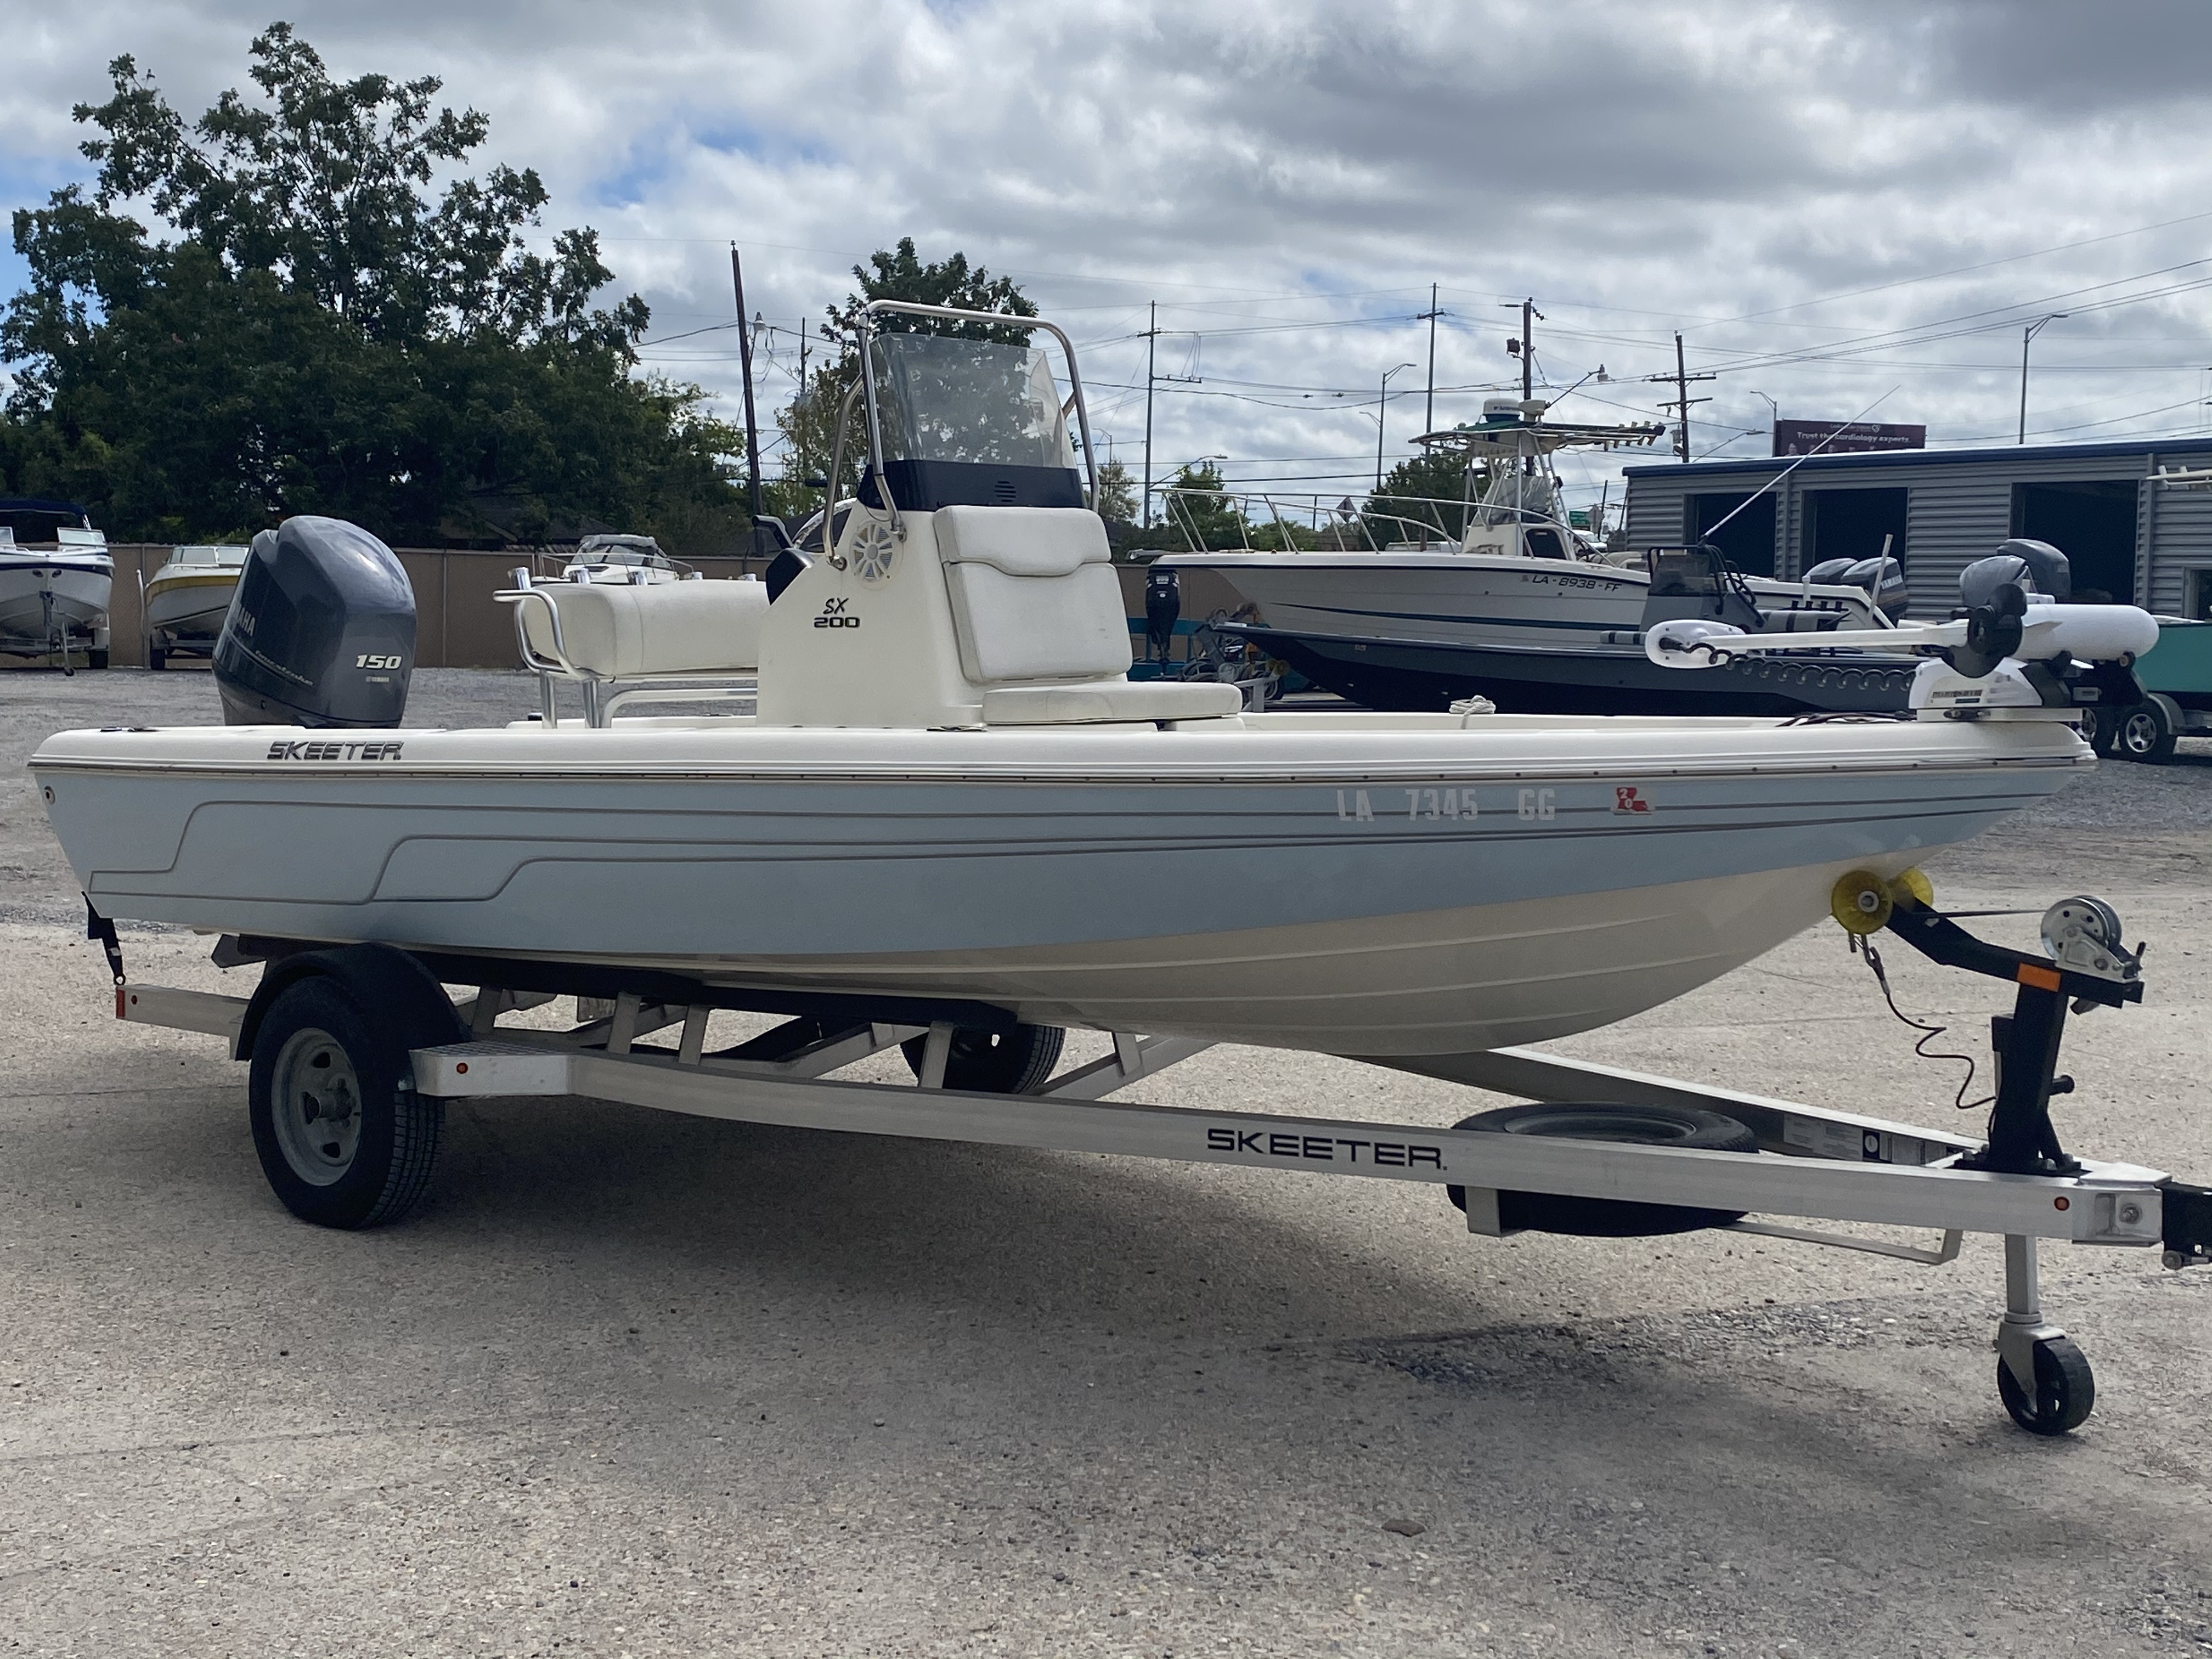 2016 Skeeter boat for sale, model of the boat is SX200 & Image # 14 of 19